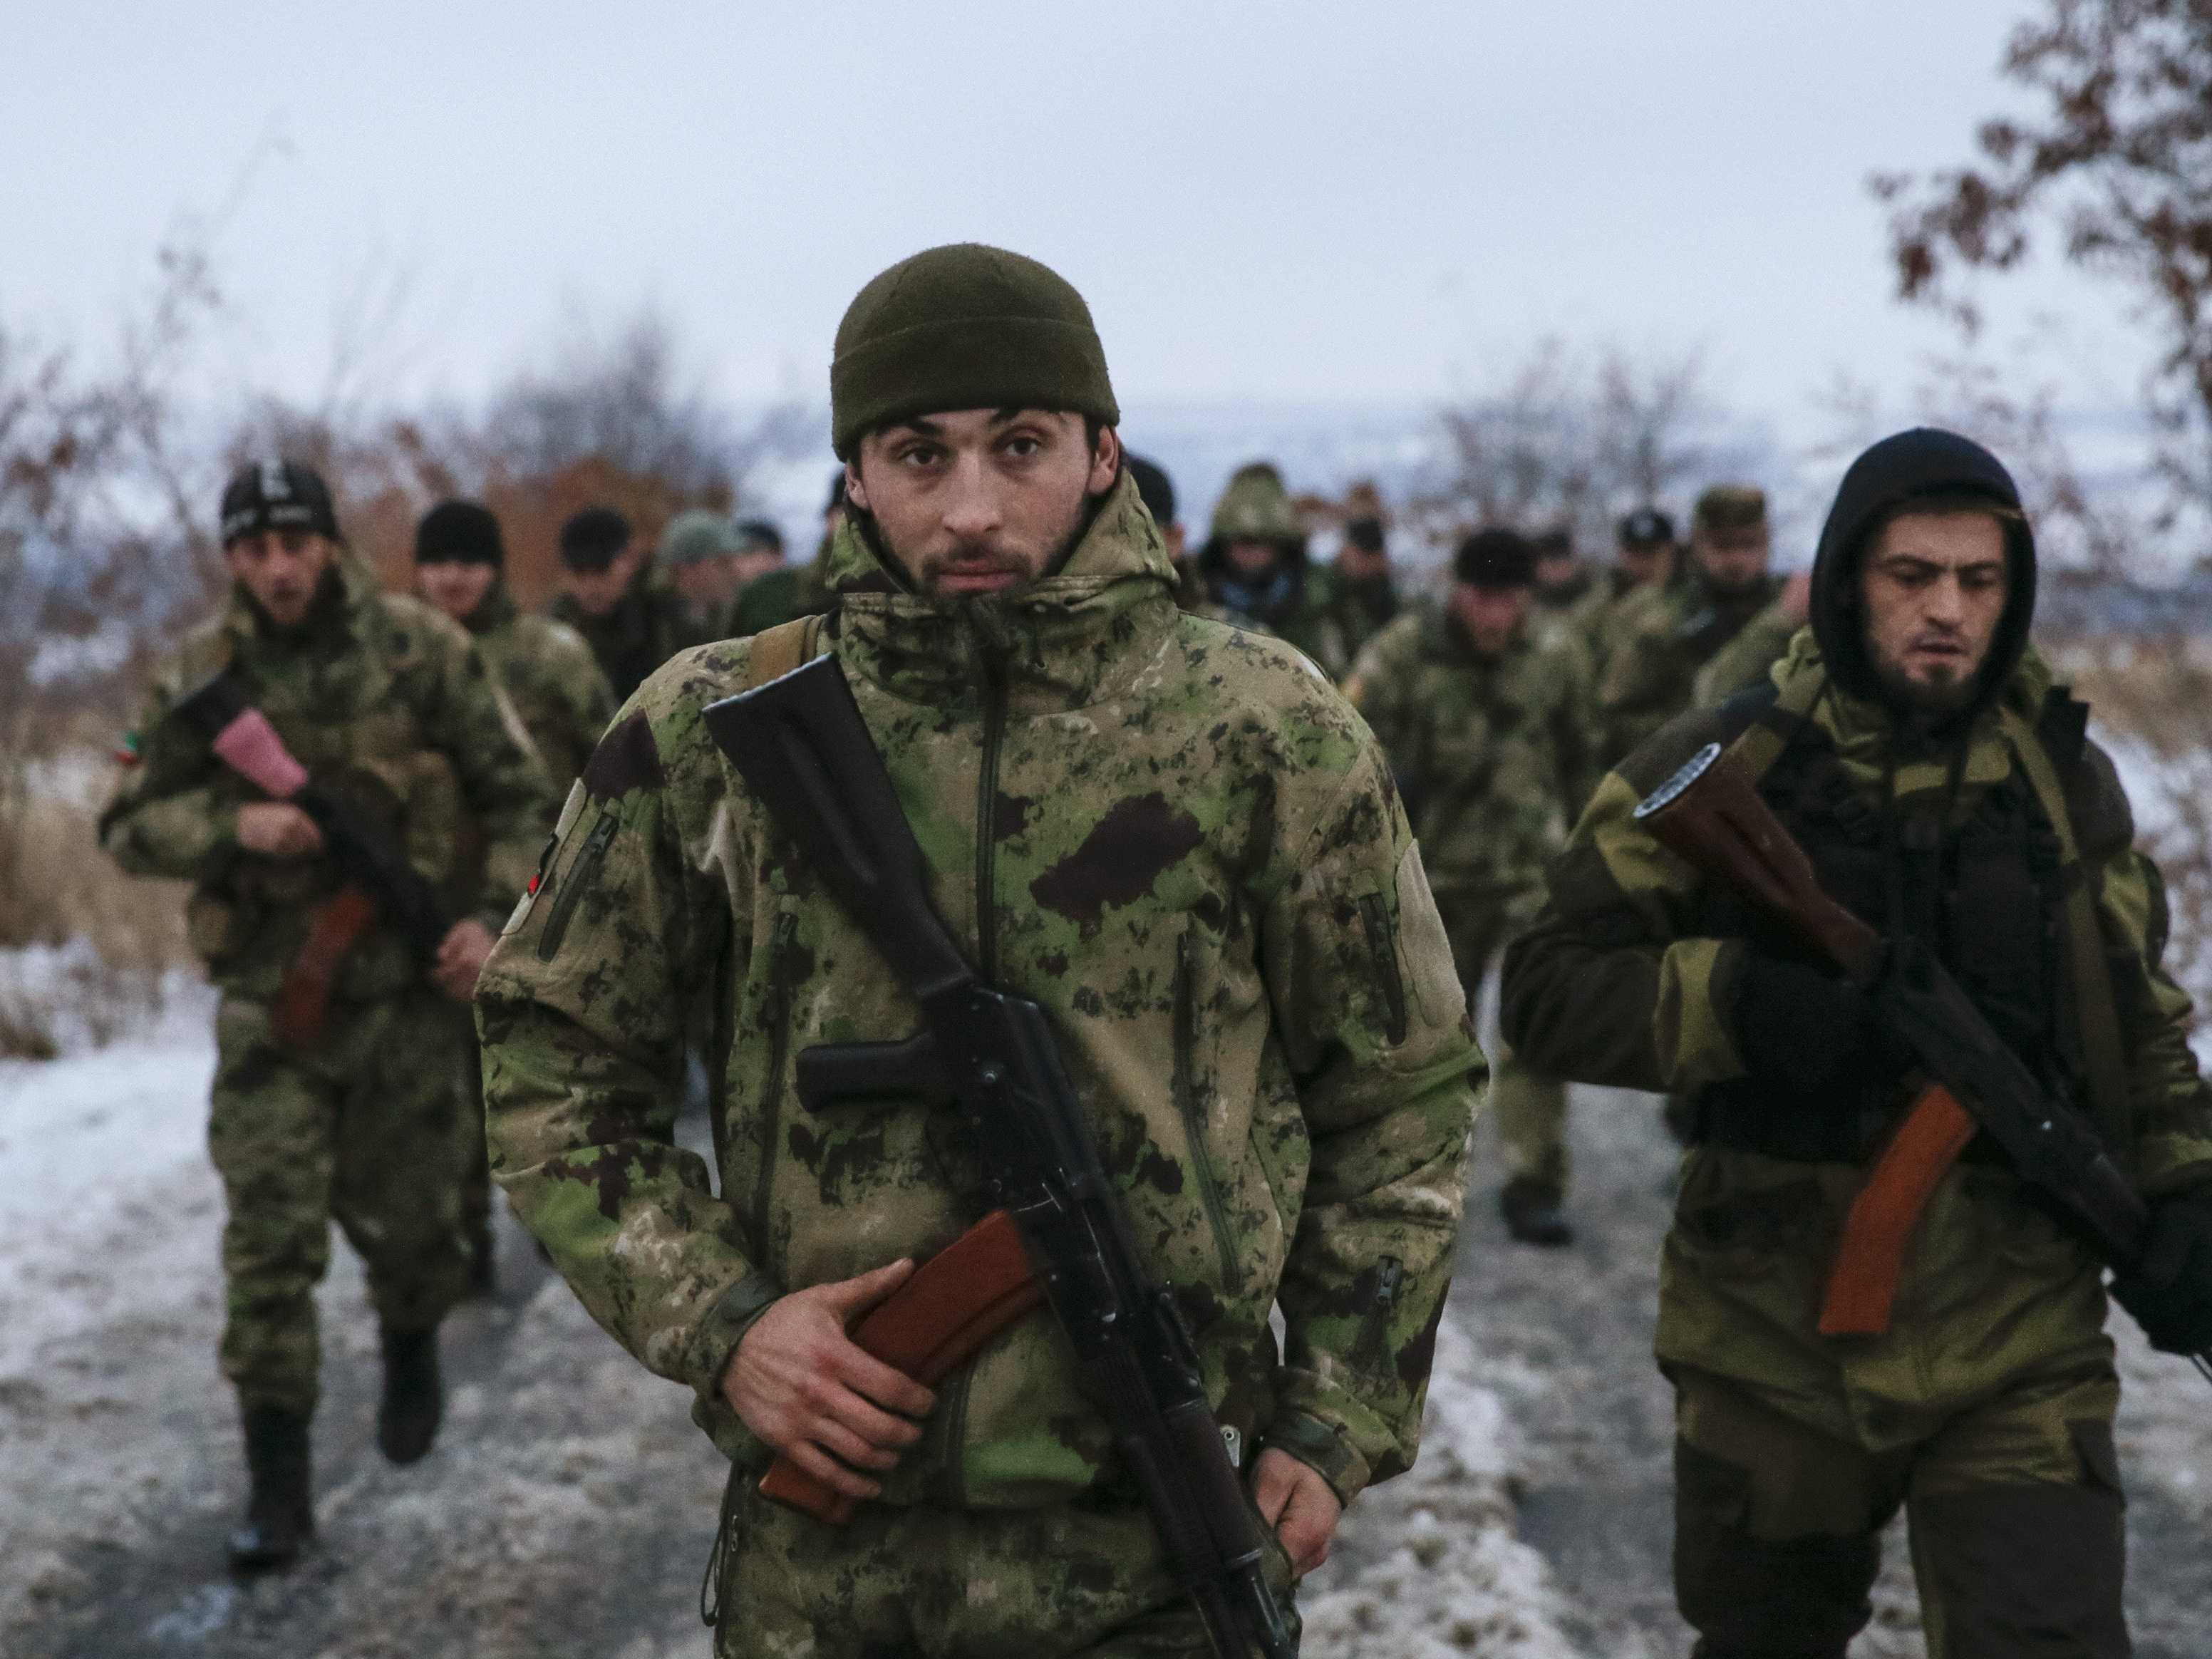 The pro-Russia separatist regions just named Crimea as a part of Ukraine